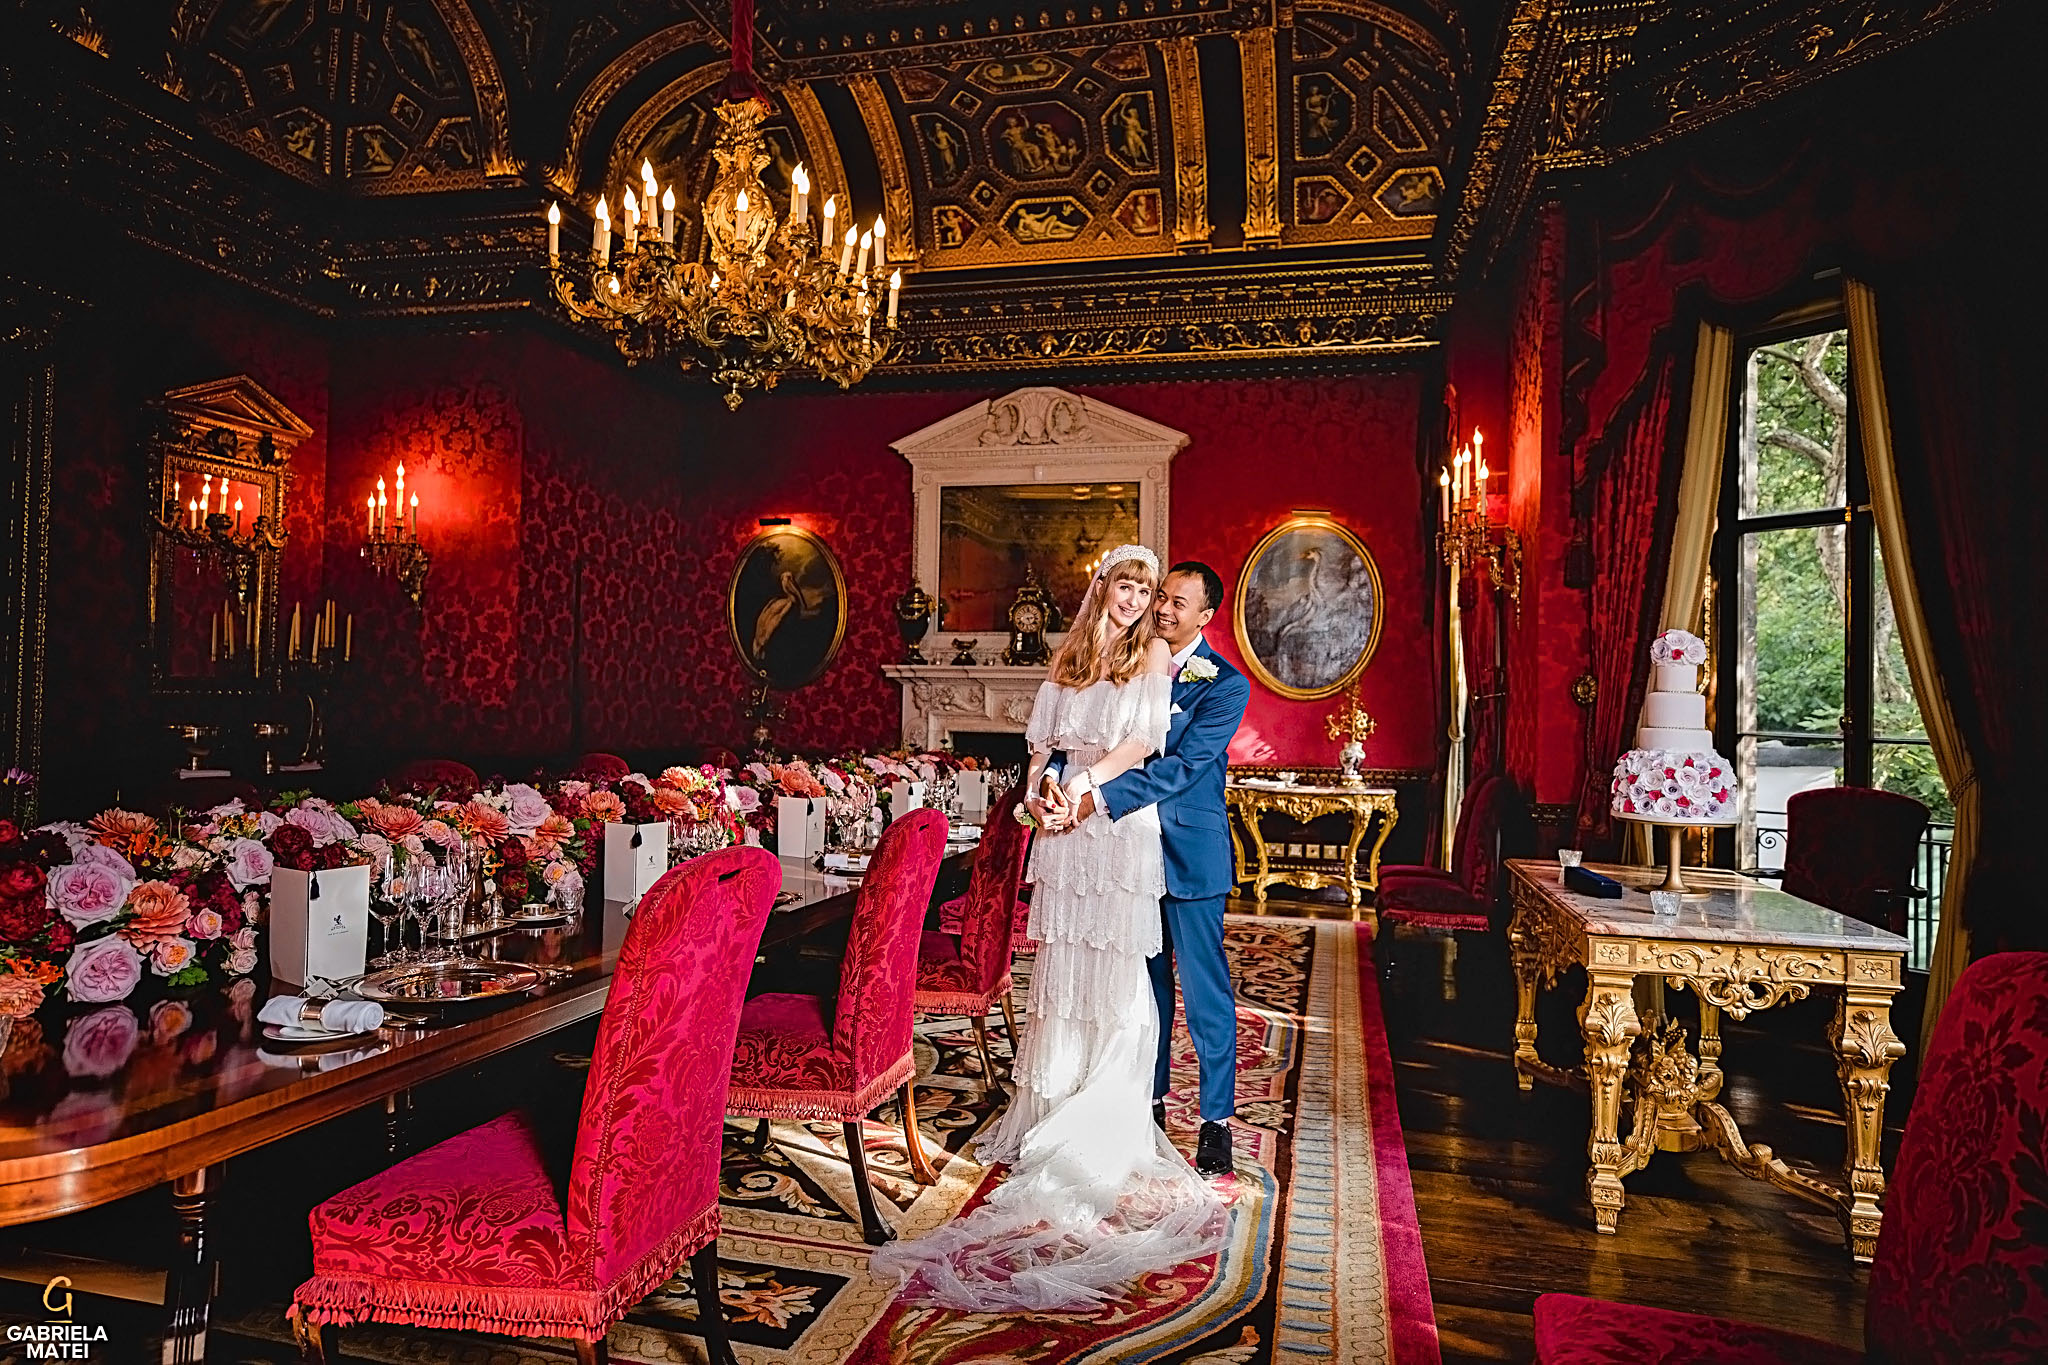 Stunning couple portrait in William Kent House Room at The Ritz hotel in London, wedding cake